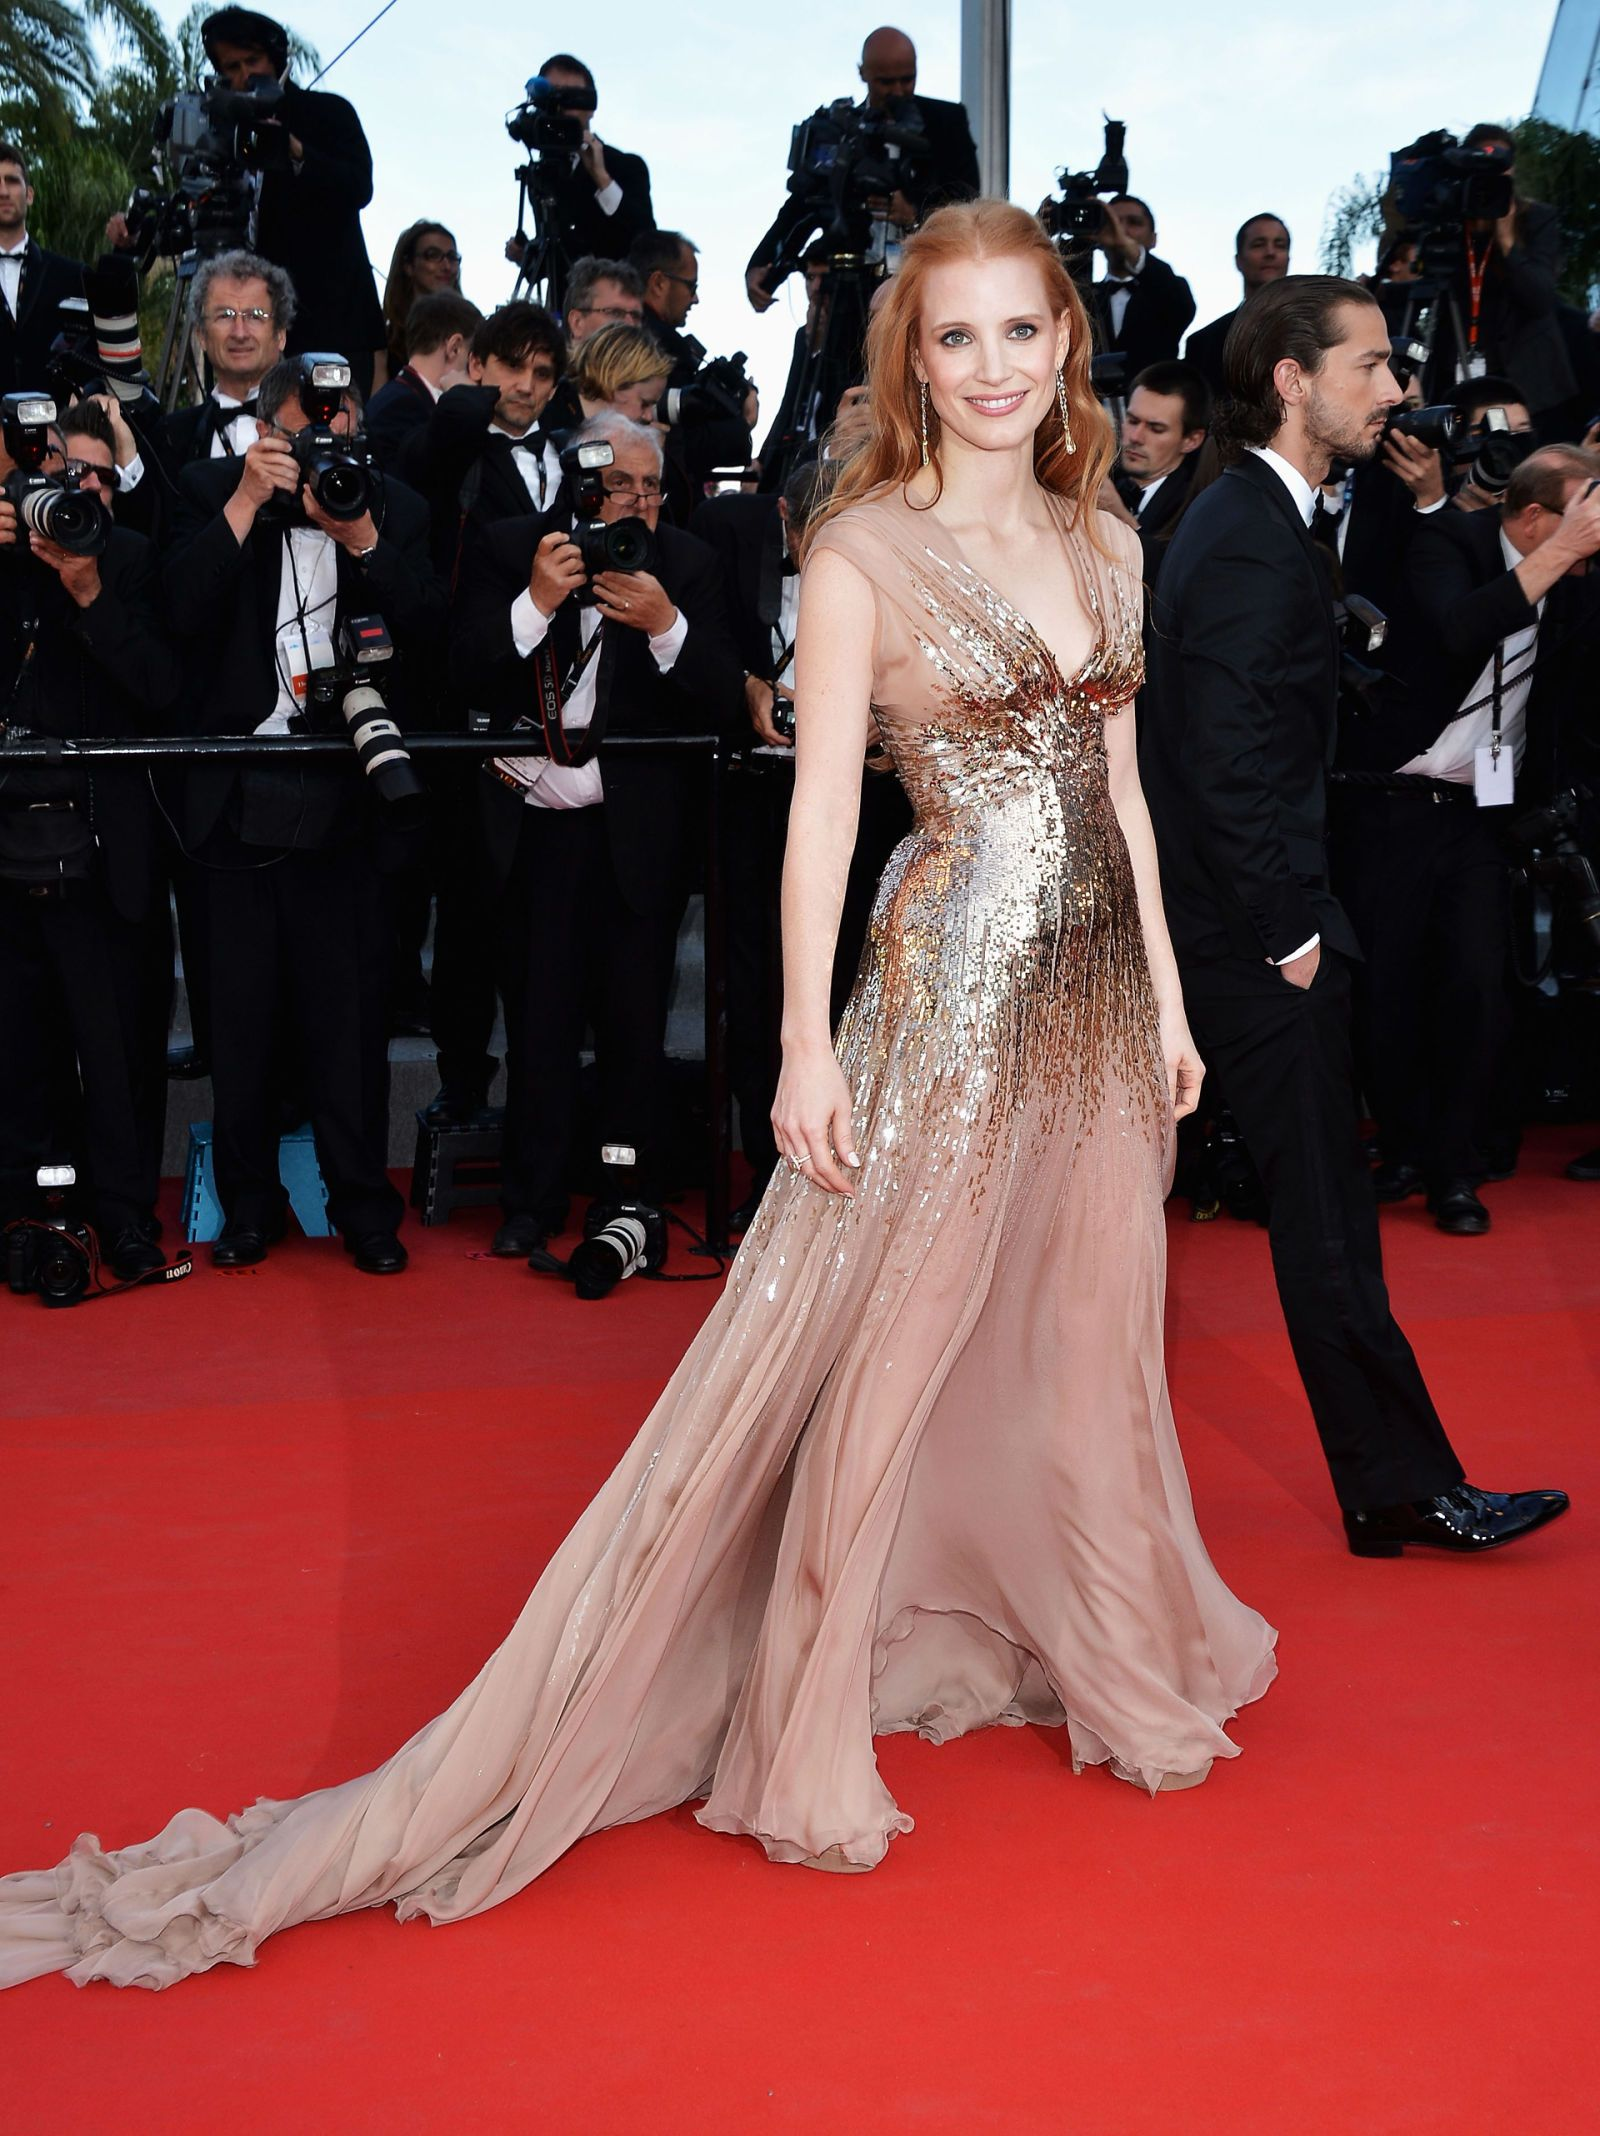 76f9a3034c29 Jessica Chastain Best Red Carpet Moments - Jessica Chastain Red Carpet  Fashion